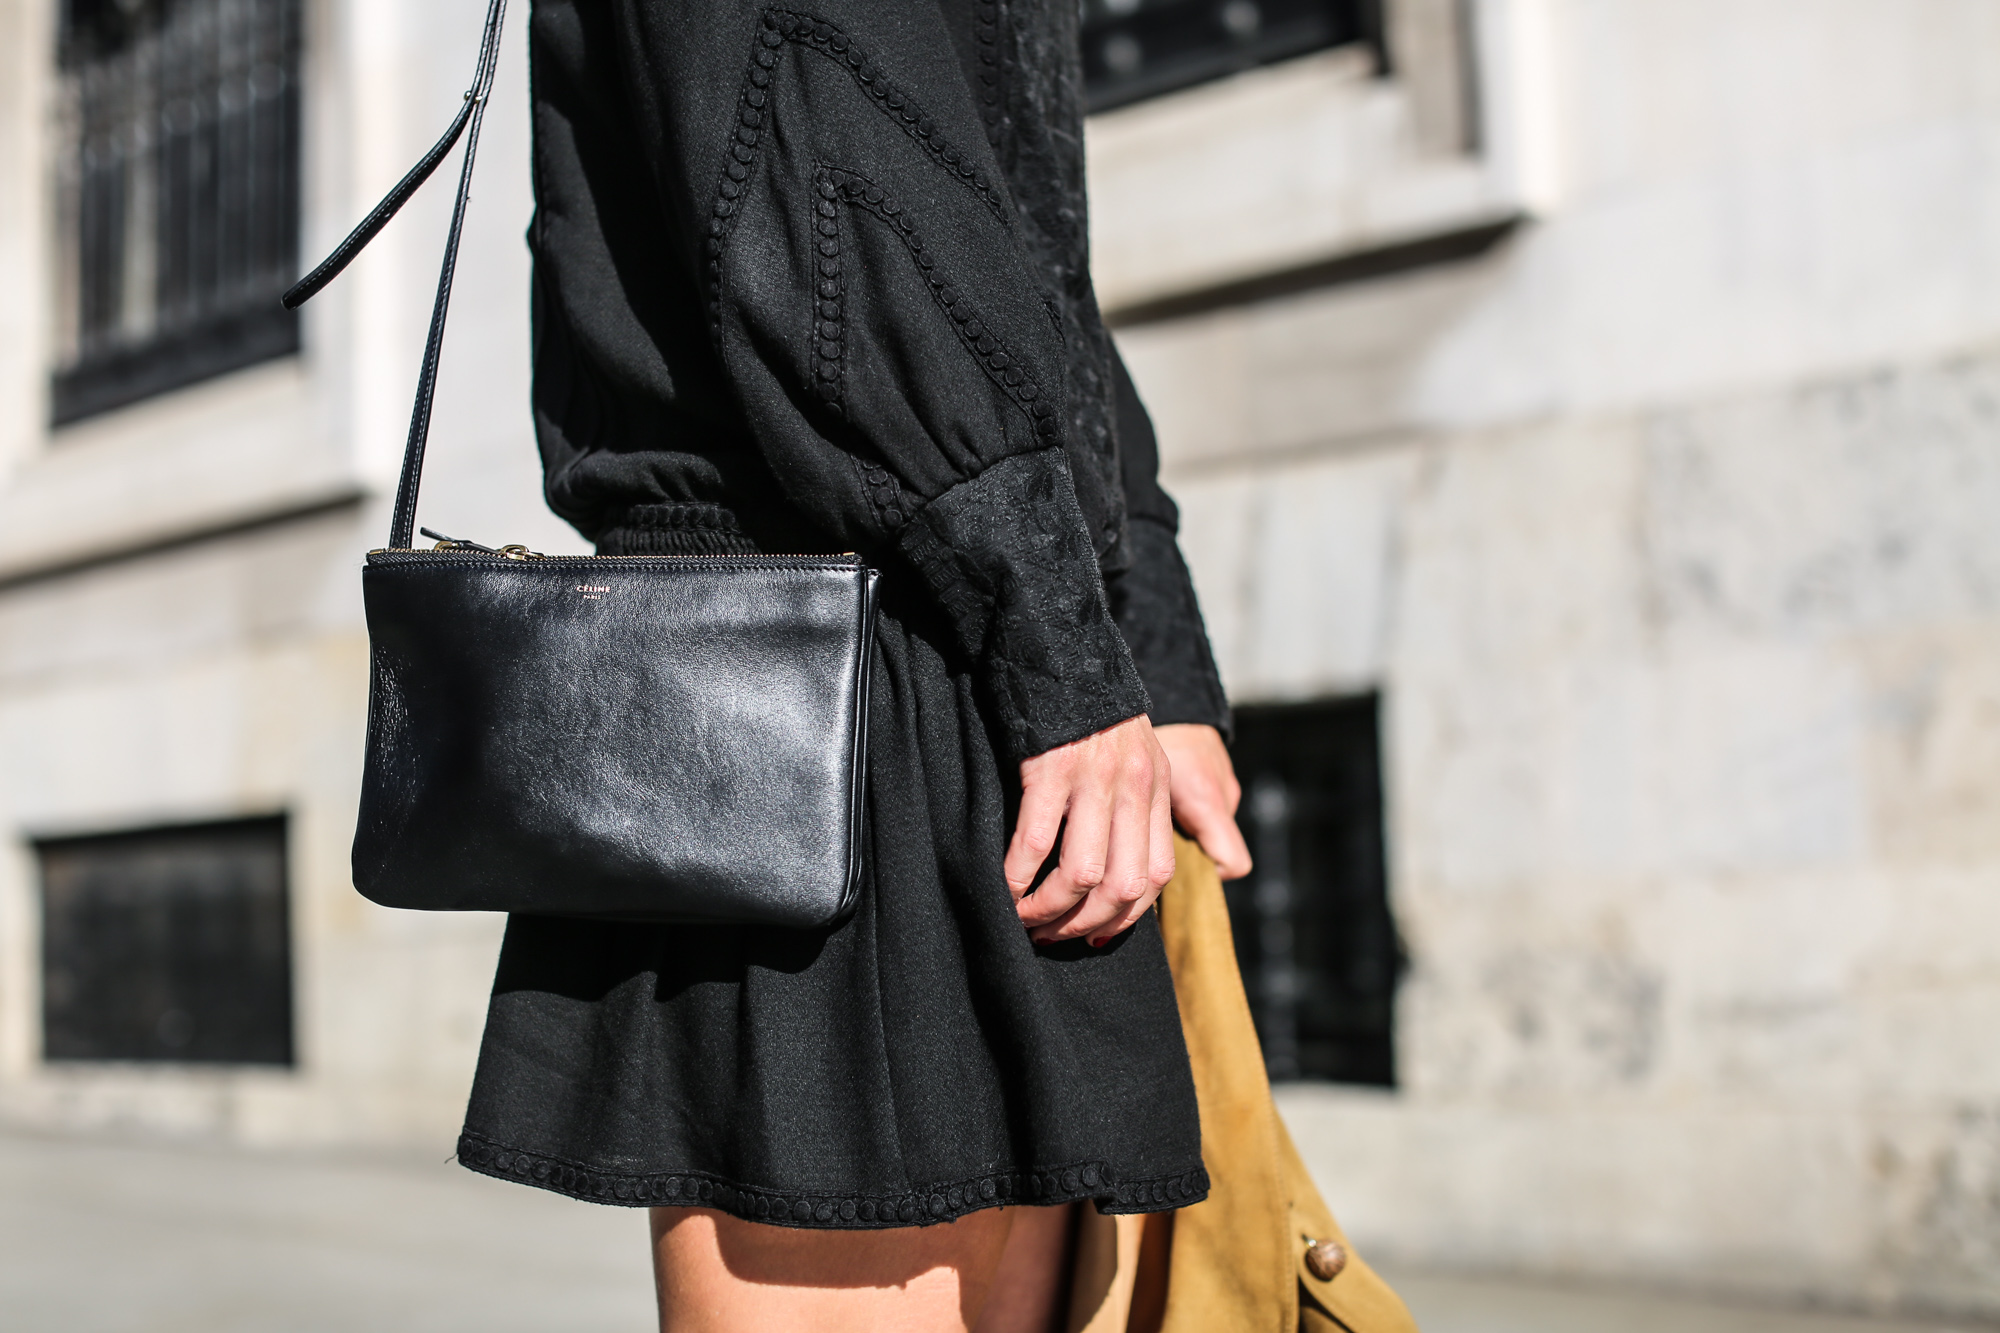 Clochet_streetstyle_suede_ankle_high_boots_boho_minidress-10